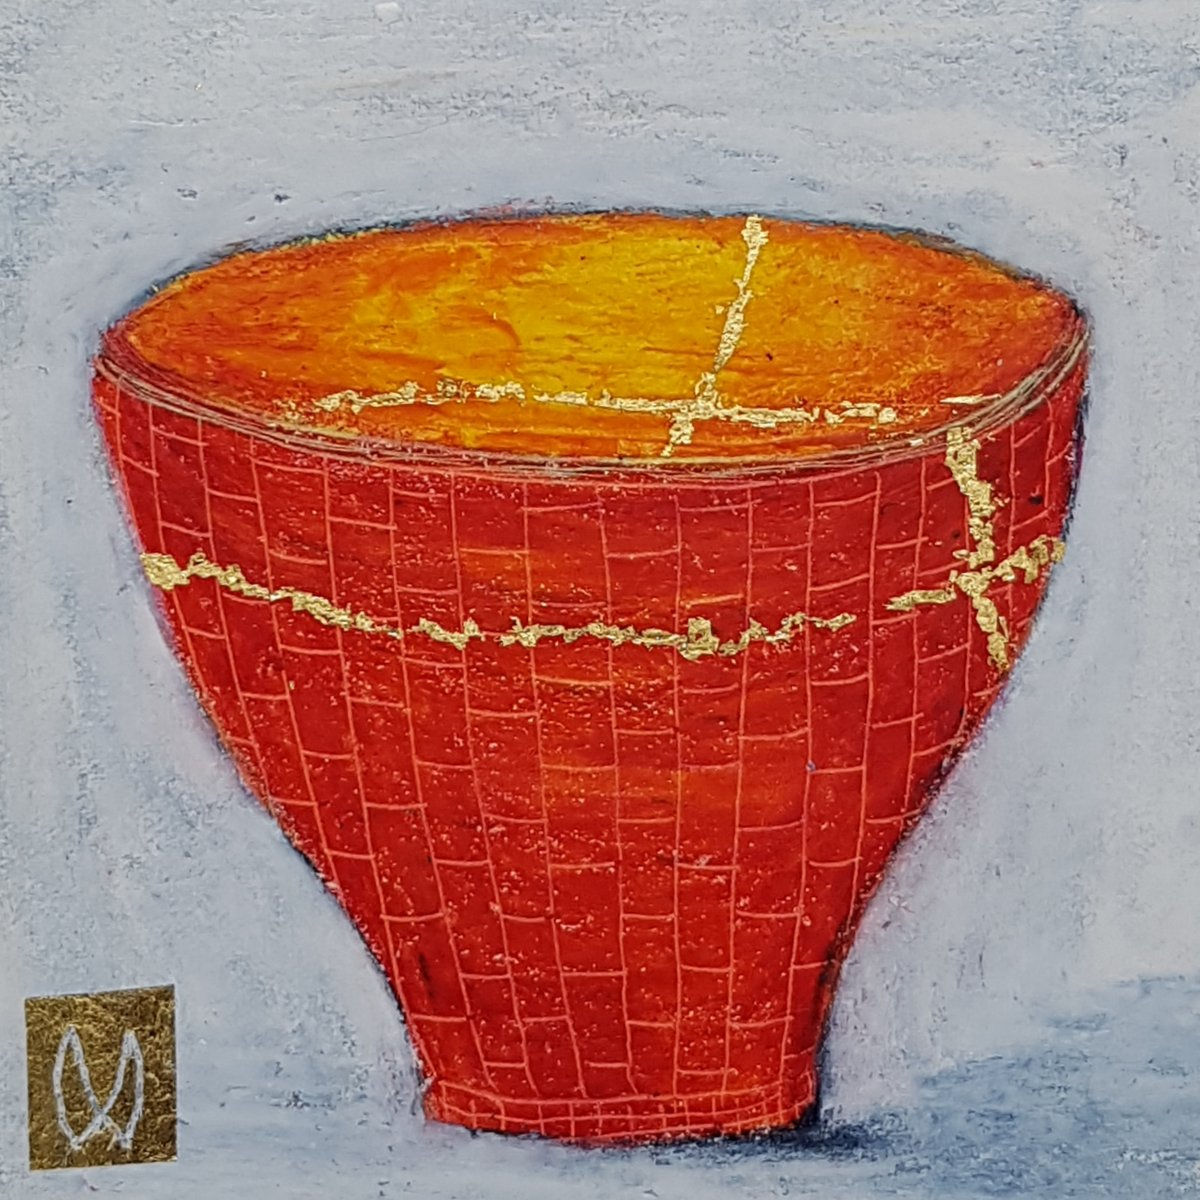 painting of Japanese kintsugi tea bowl with gold by Irish artist red orange